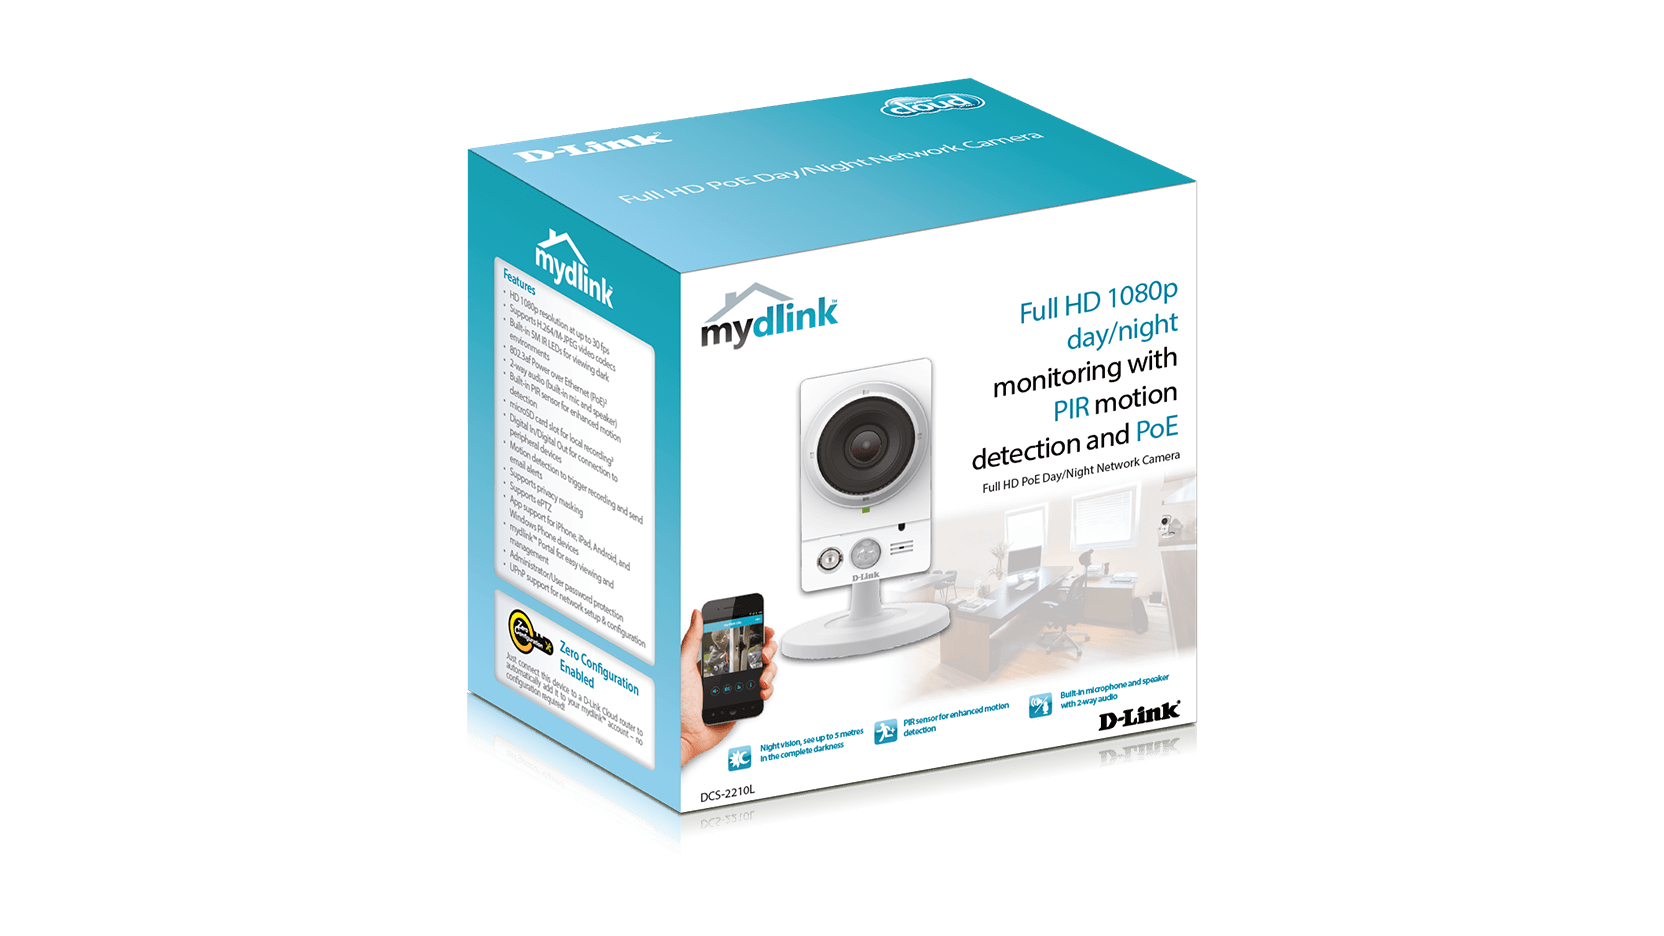 D-LINK DCS-2210L NETWORK CAMERA DRIVERS FOR WINDOWS 8